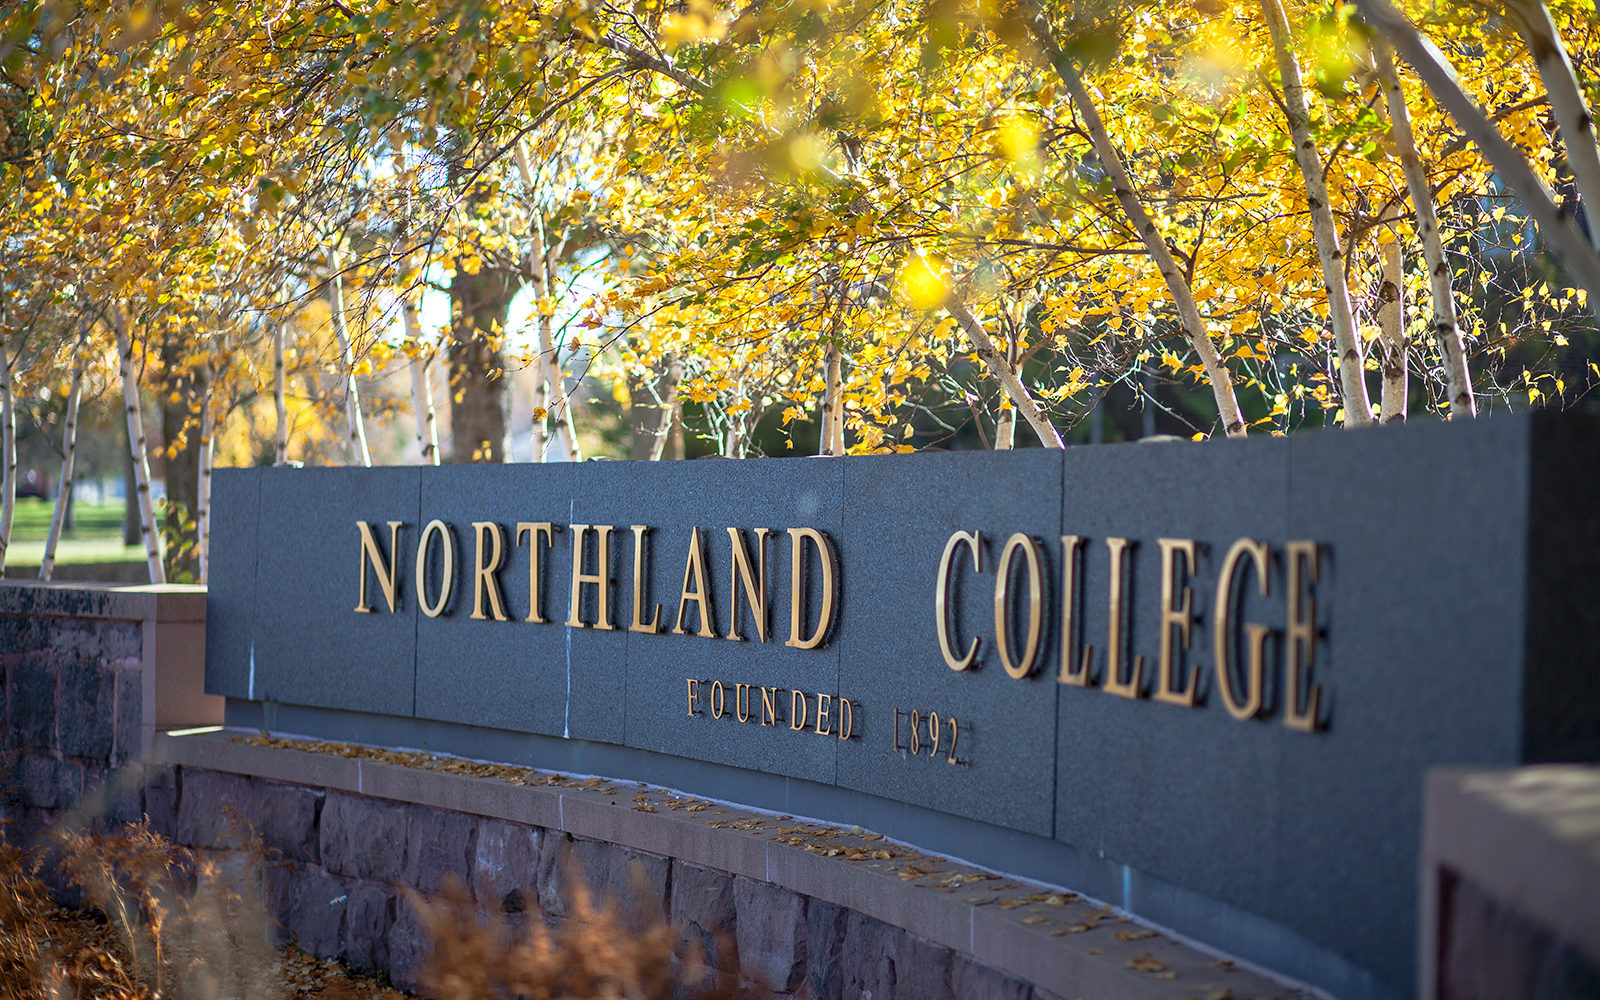 Northland College sign